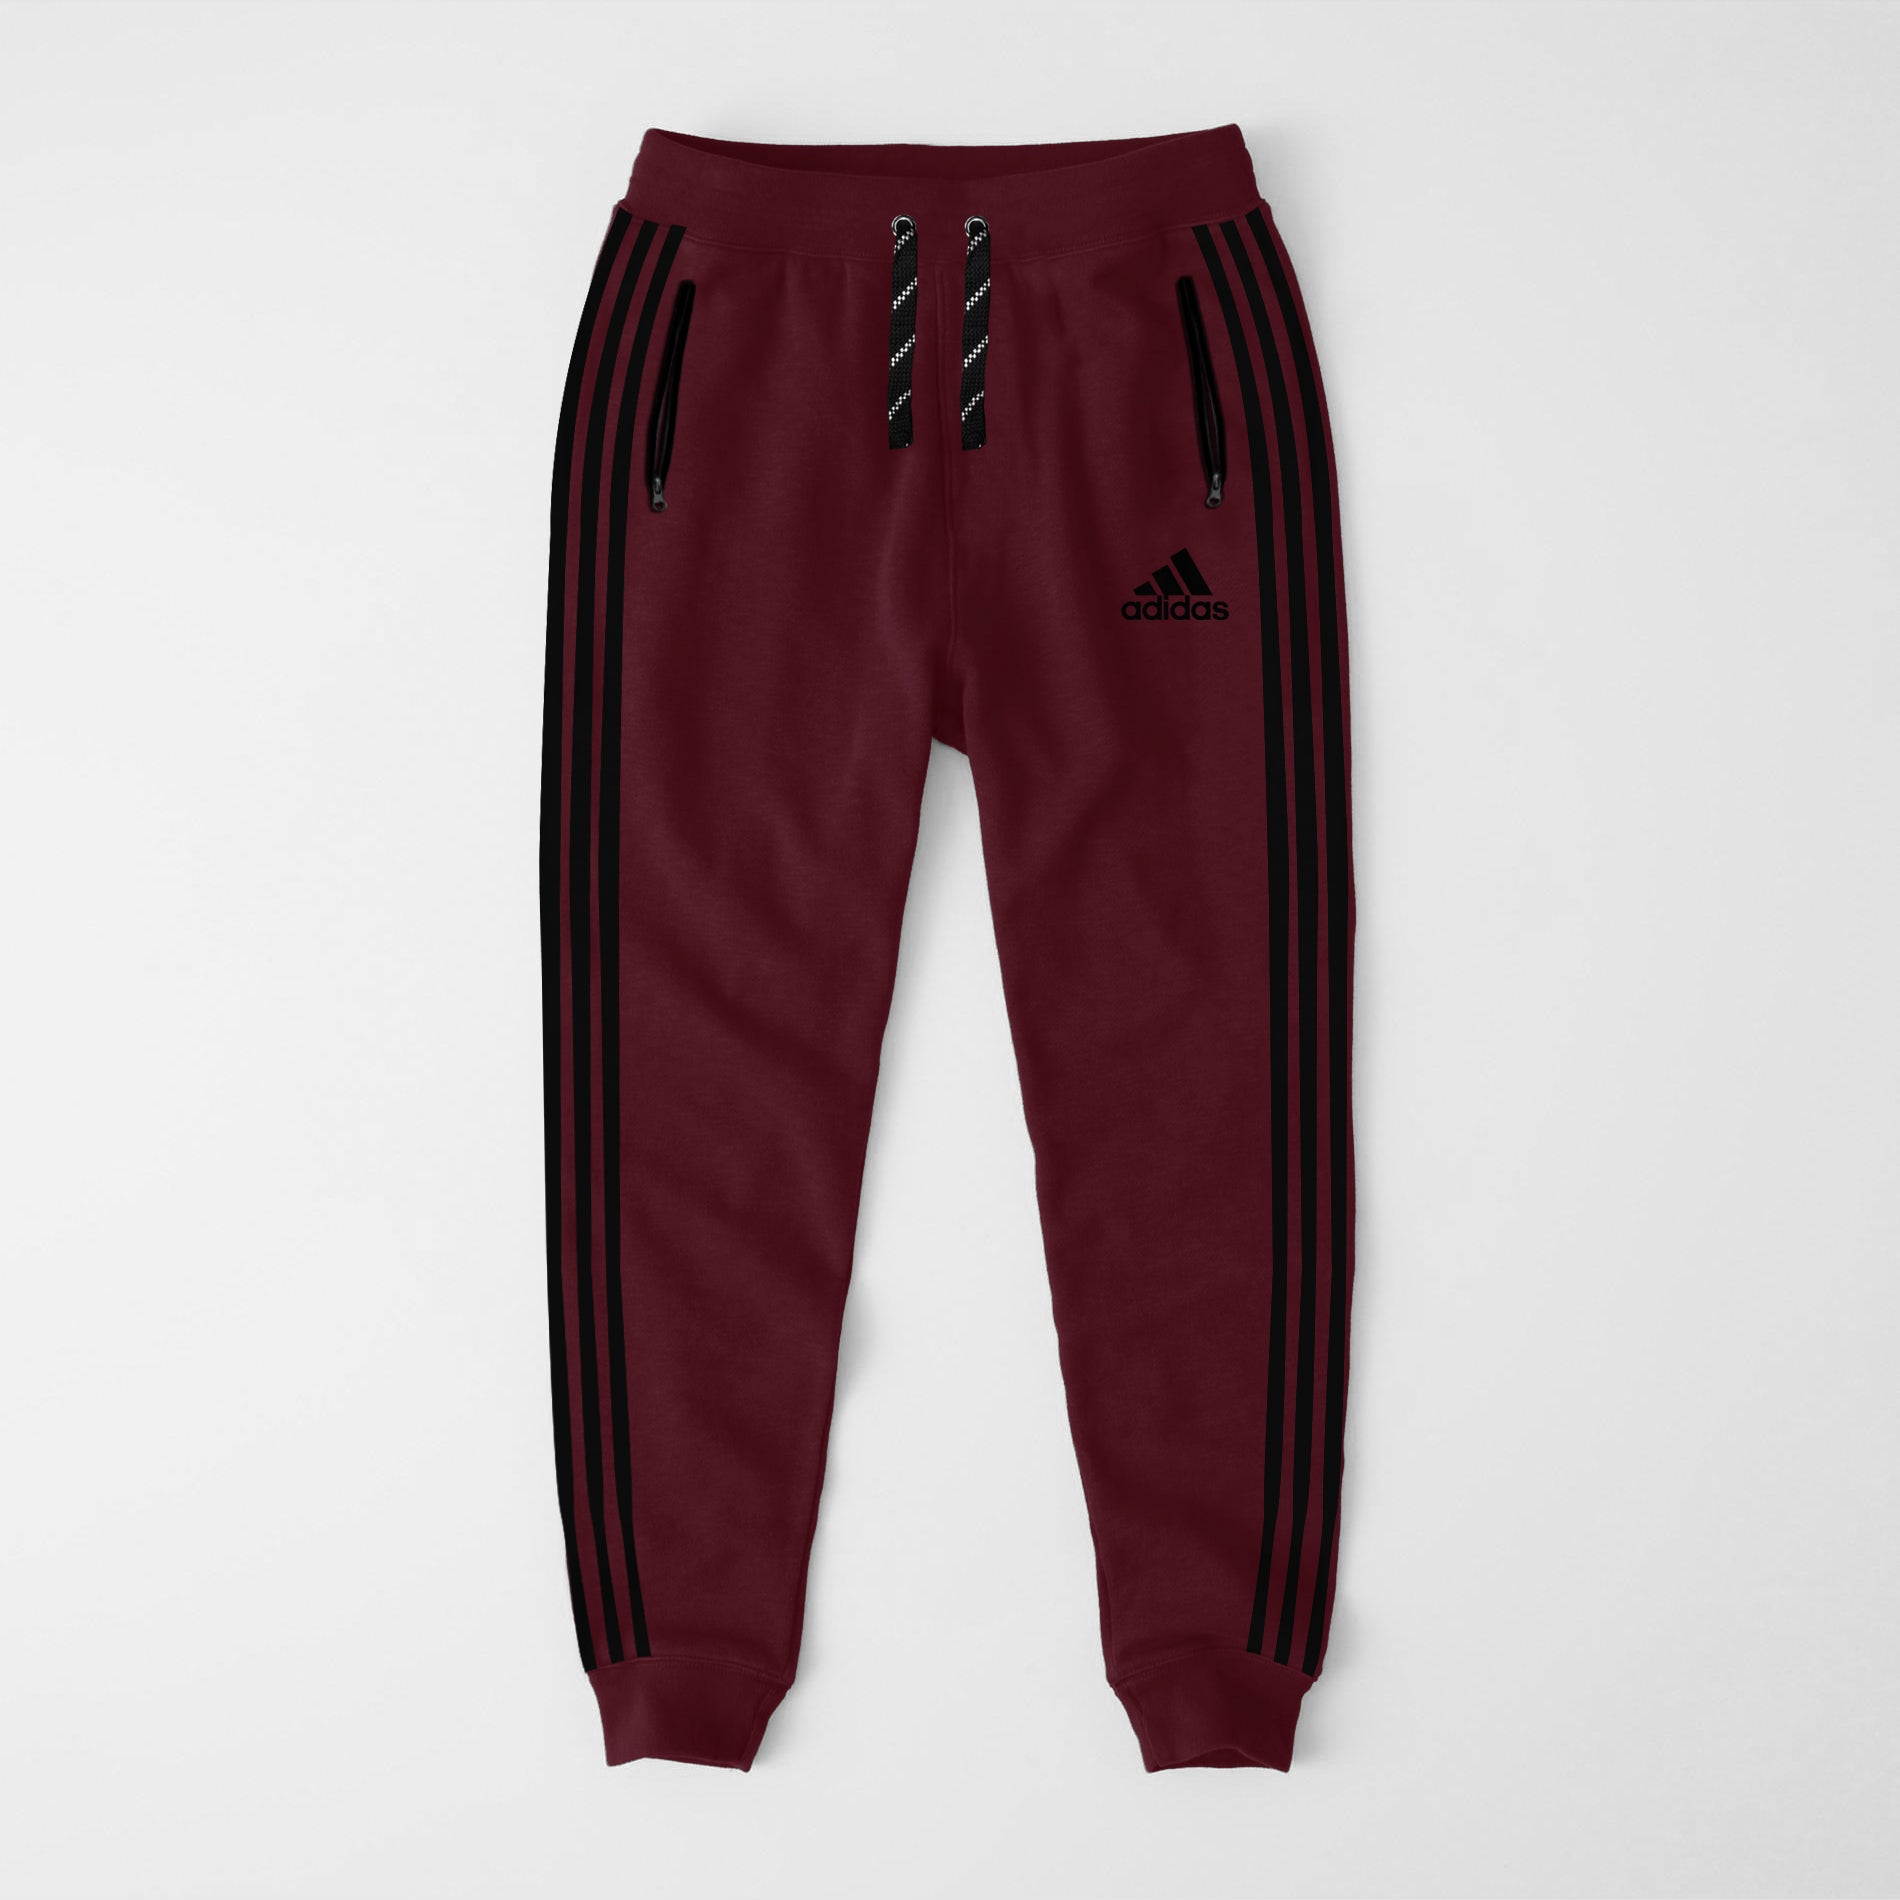 Adidas Single Jersey Slim Fit Jogger Trouser For Men-Light Burgundy-NA8245